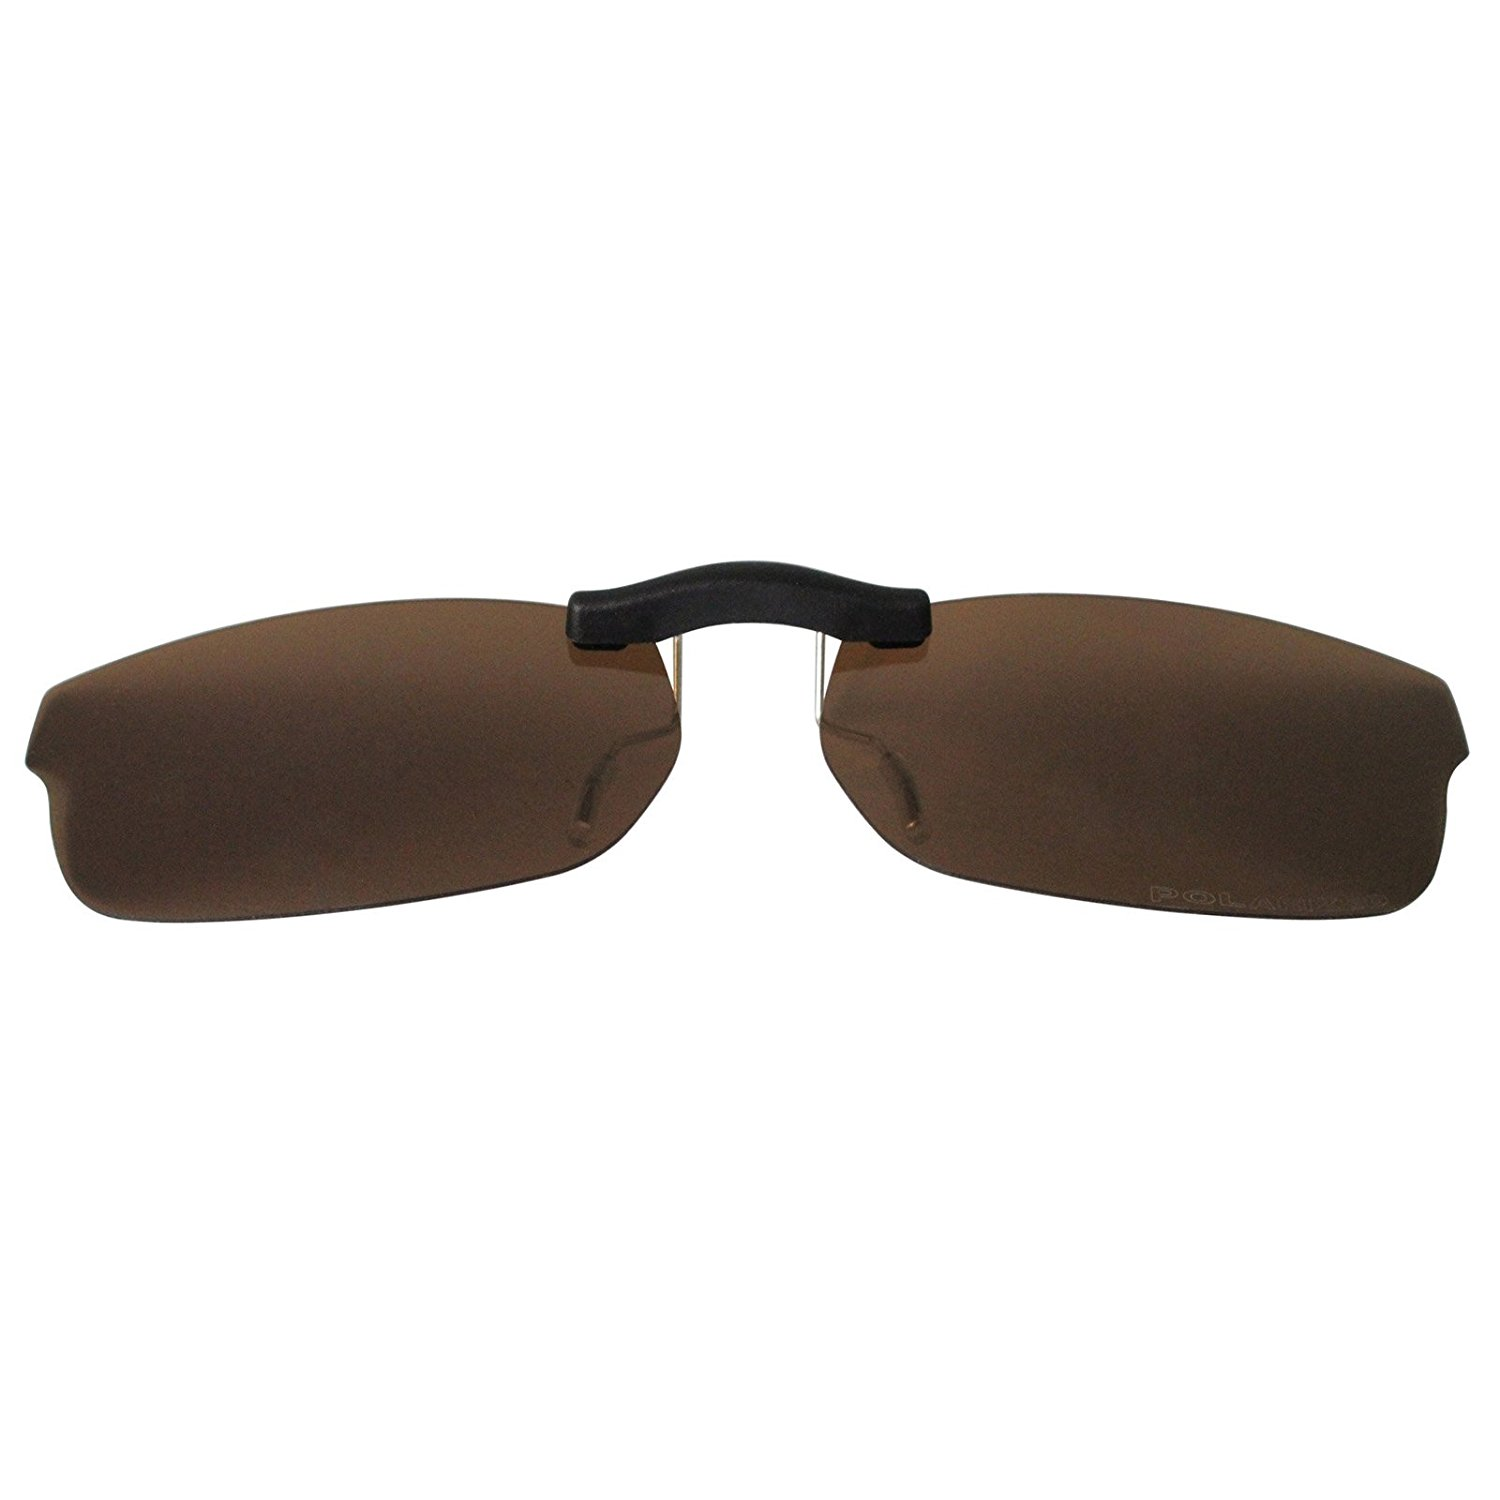 c8cf460120c Get Quotations · Custom Polarized Clip On Sunglasses for Ray-Ban RB5187  (RX5187) 52x16(No